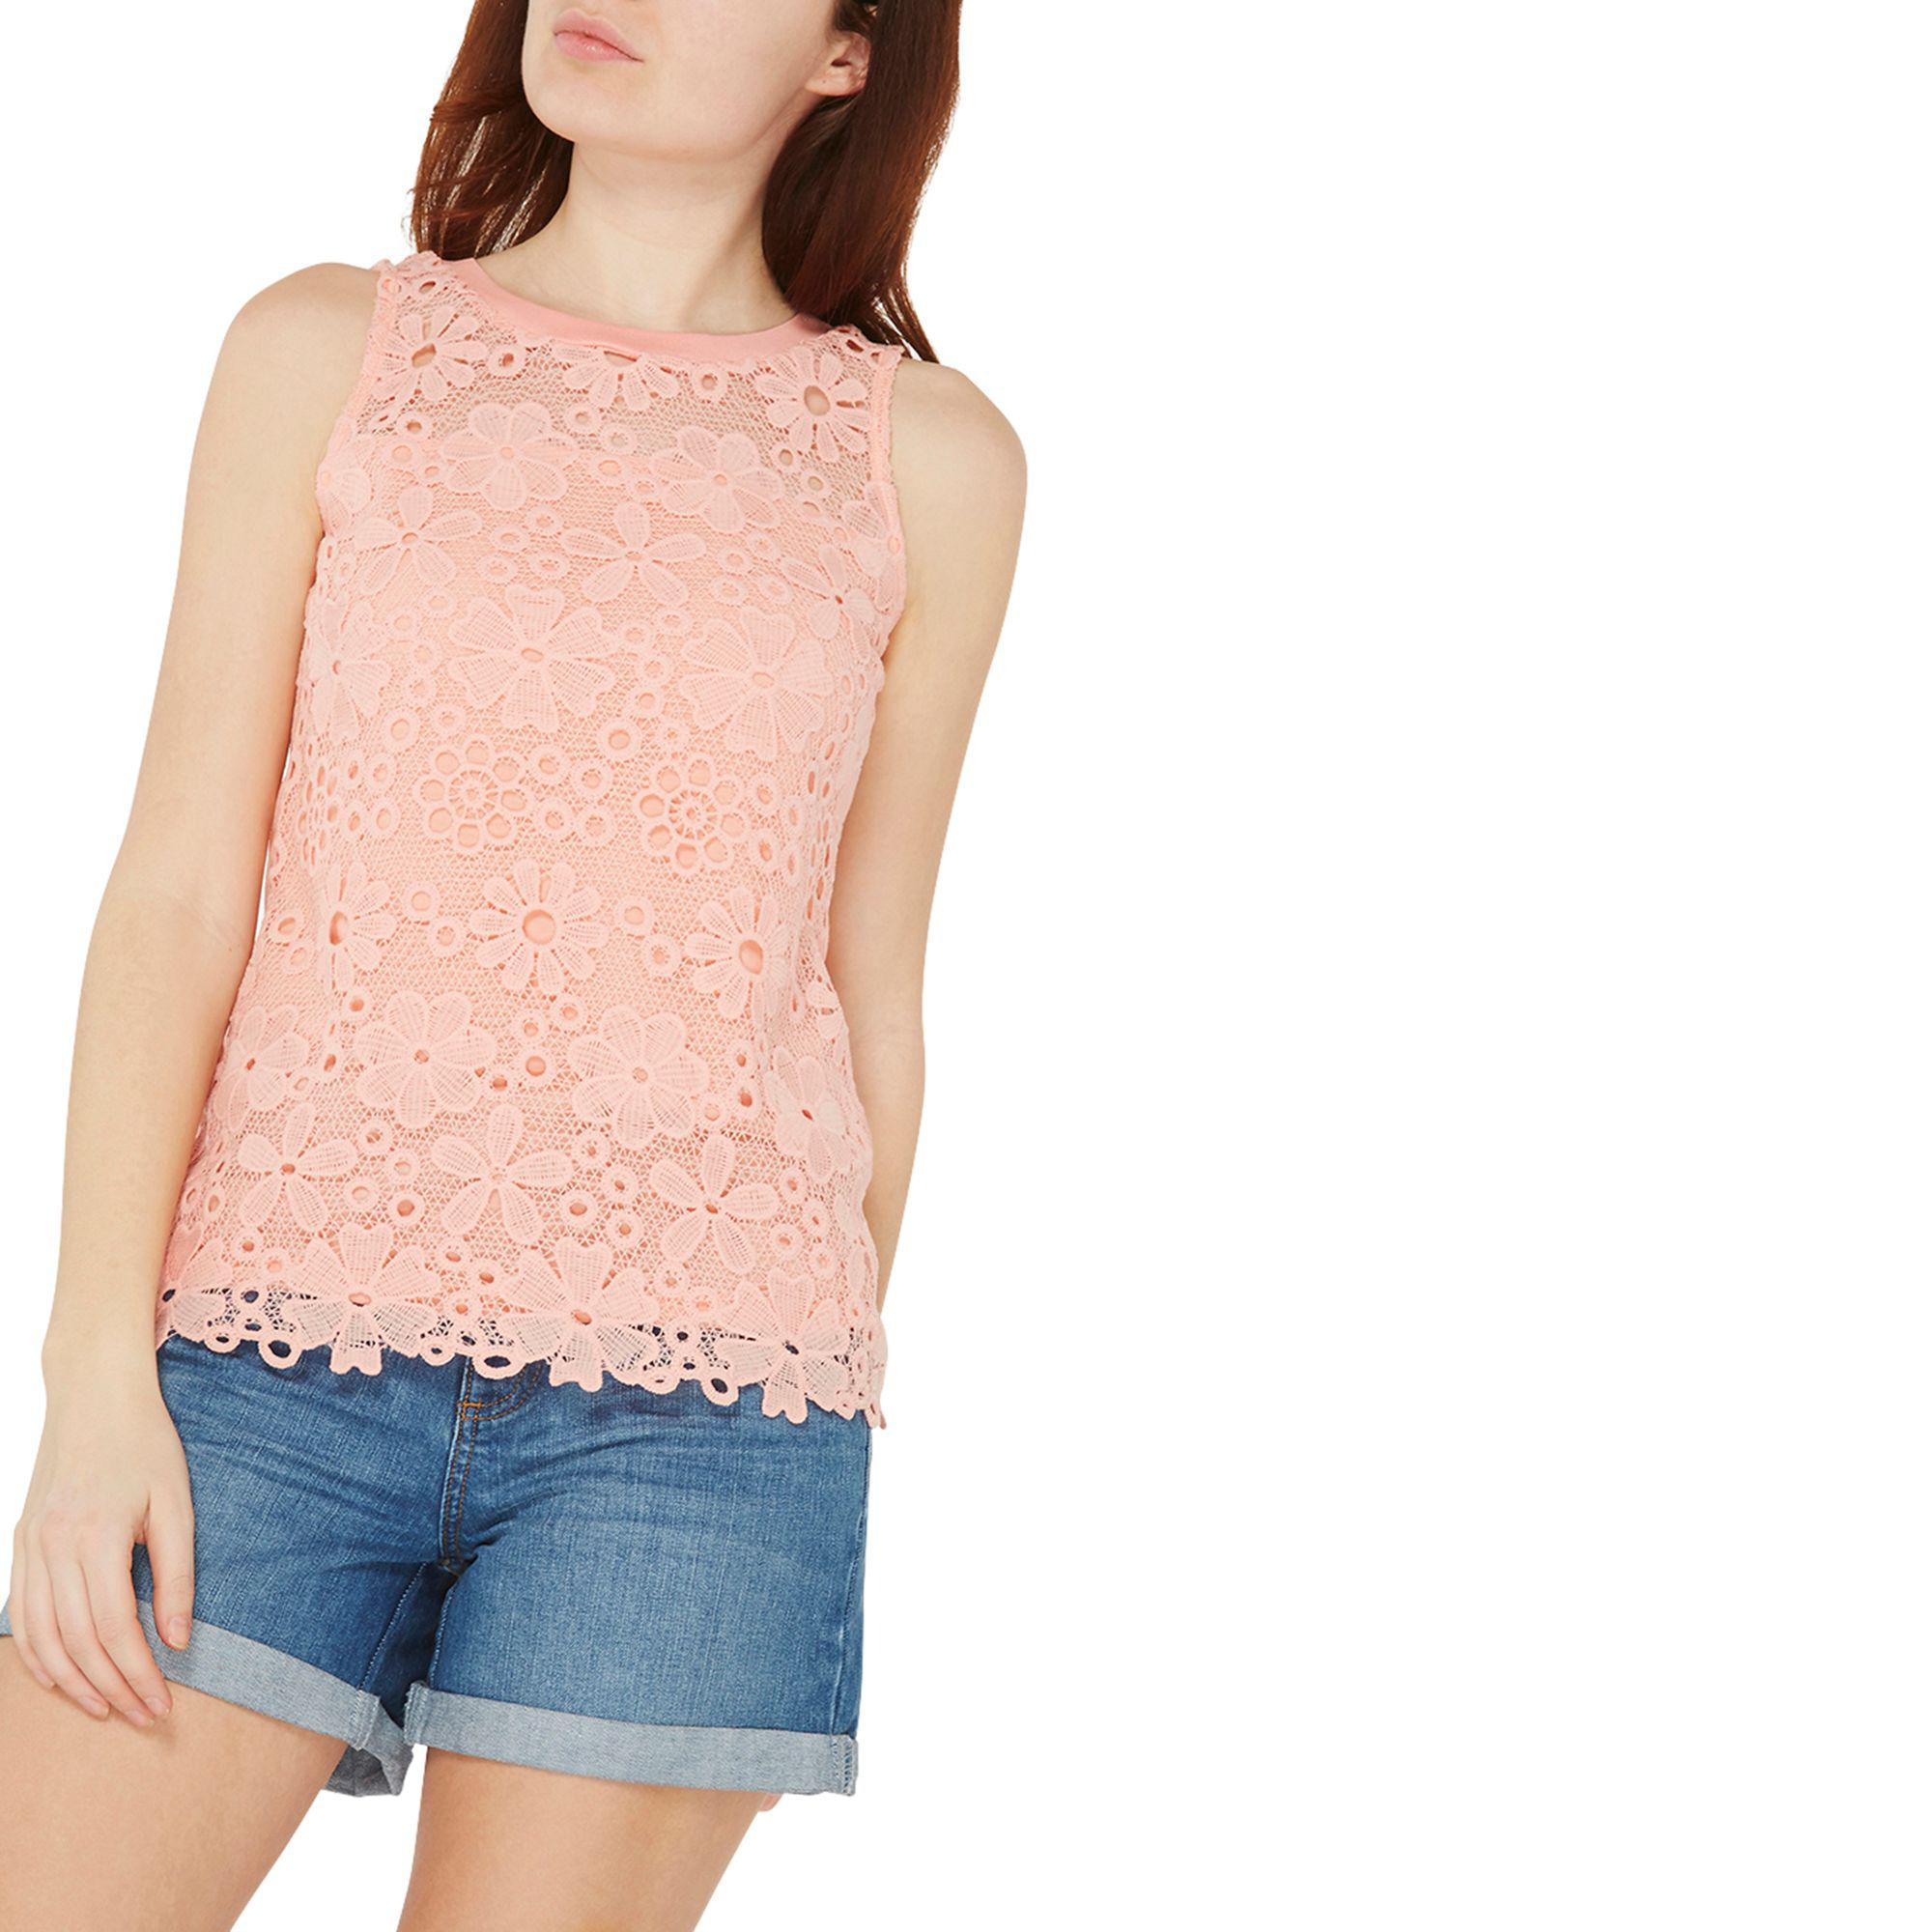 4c0bd5dc770513 Gallery. Previously sold at: Debenhams · Women's Lace Tops ...